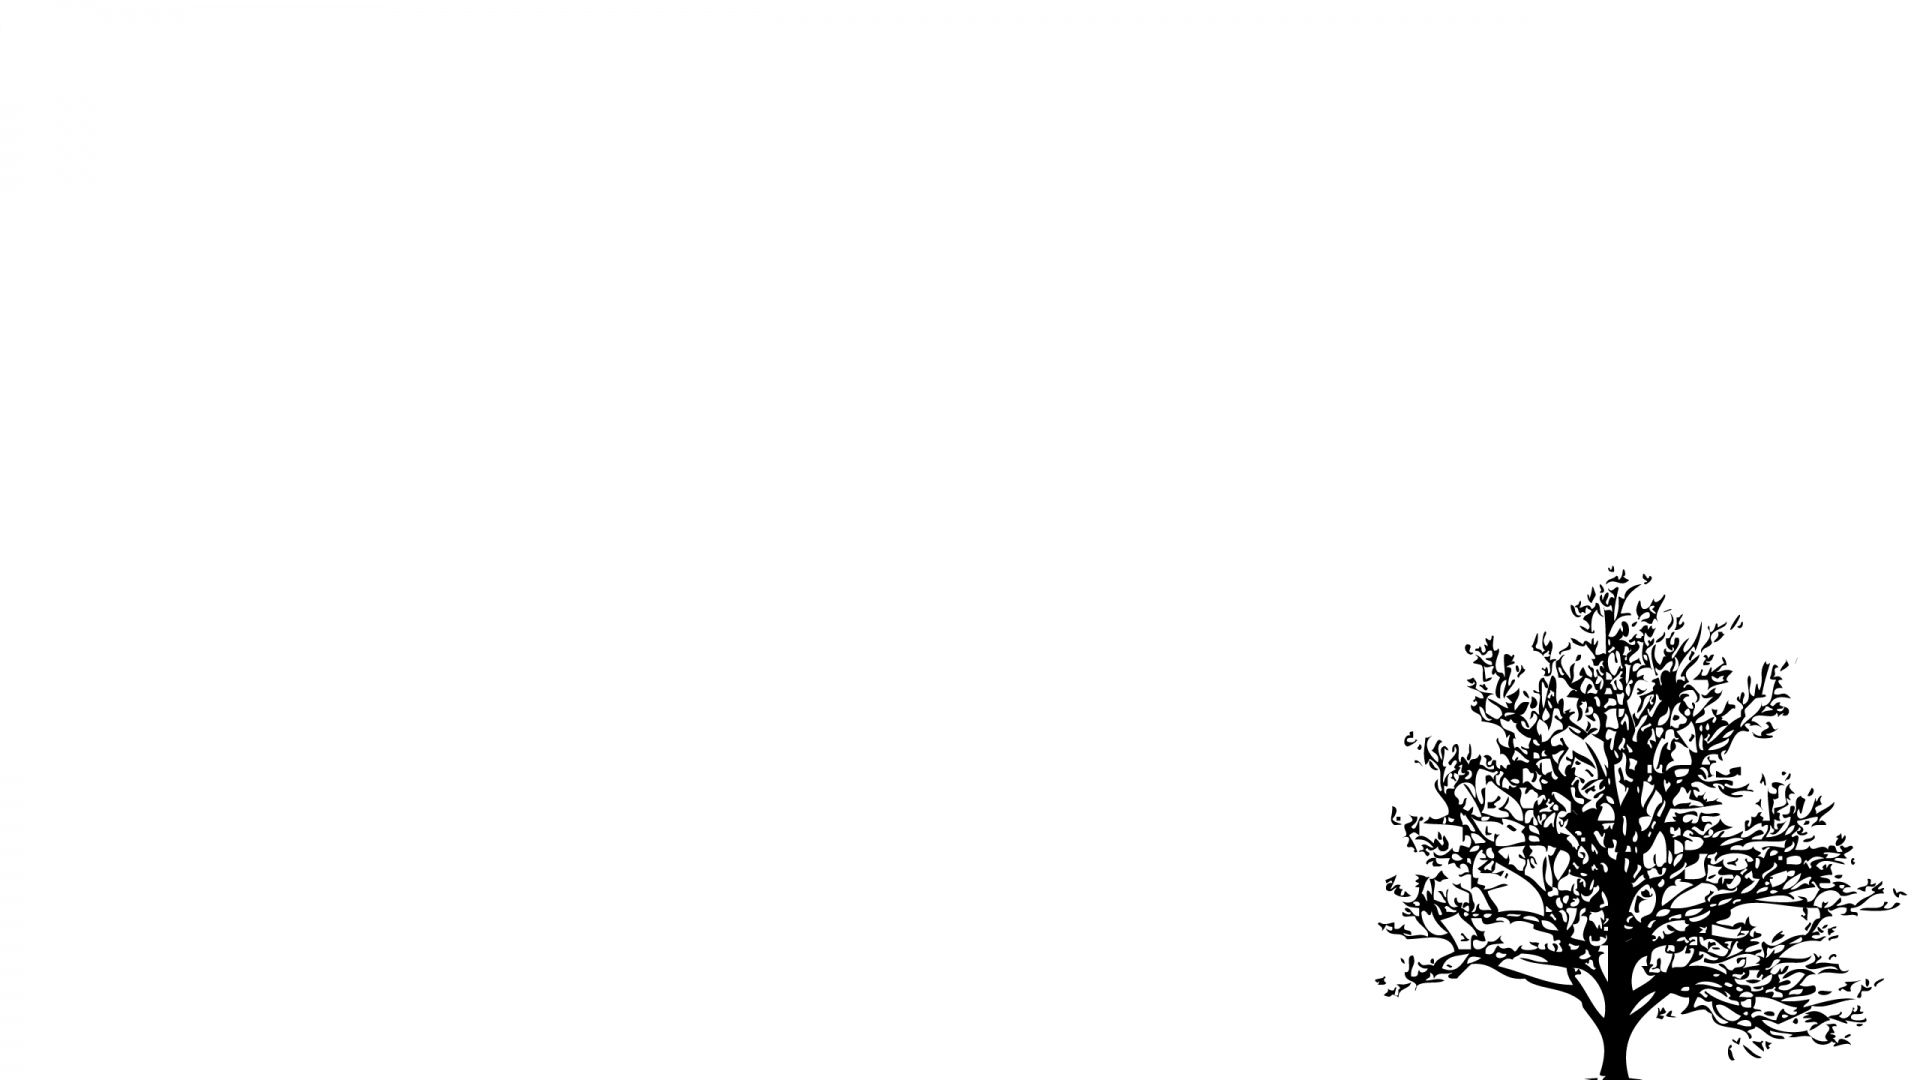 Download Wallpaper 1920x1080 Tree Branches Vector Full Hd 1080p Hd Background White Background Wallpaper Minimalist Wallpaper Minimalist Desktop Wallpaper